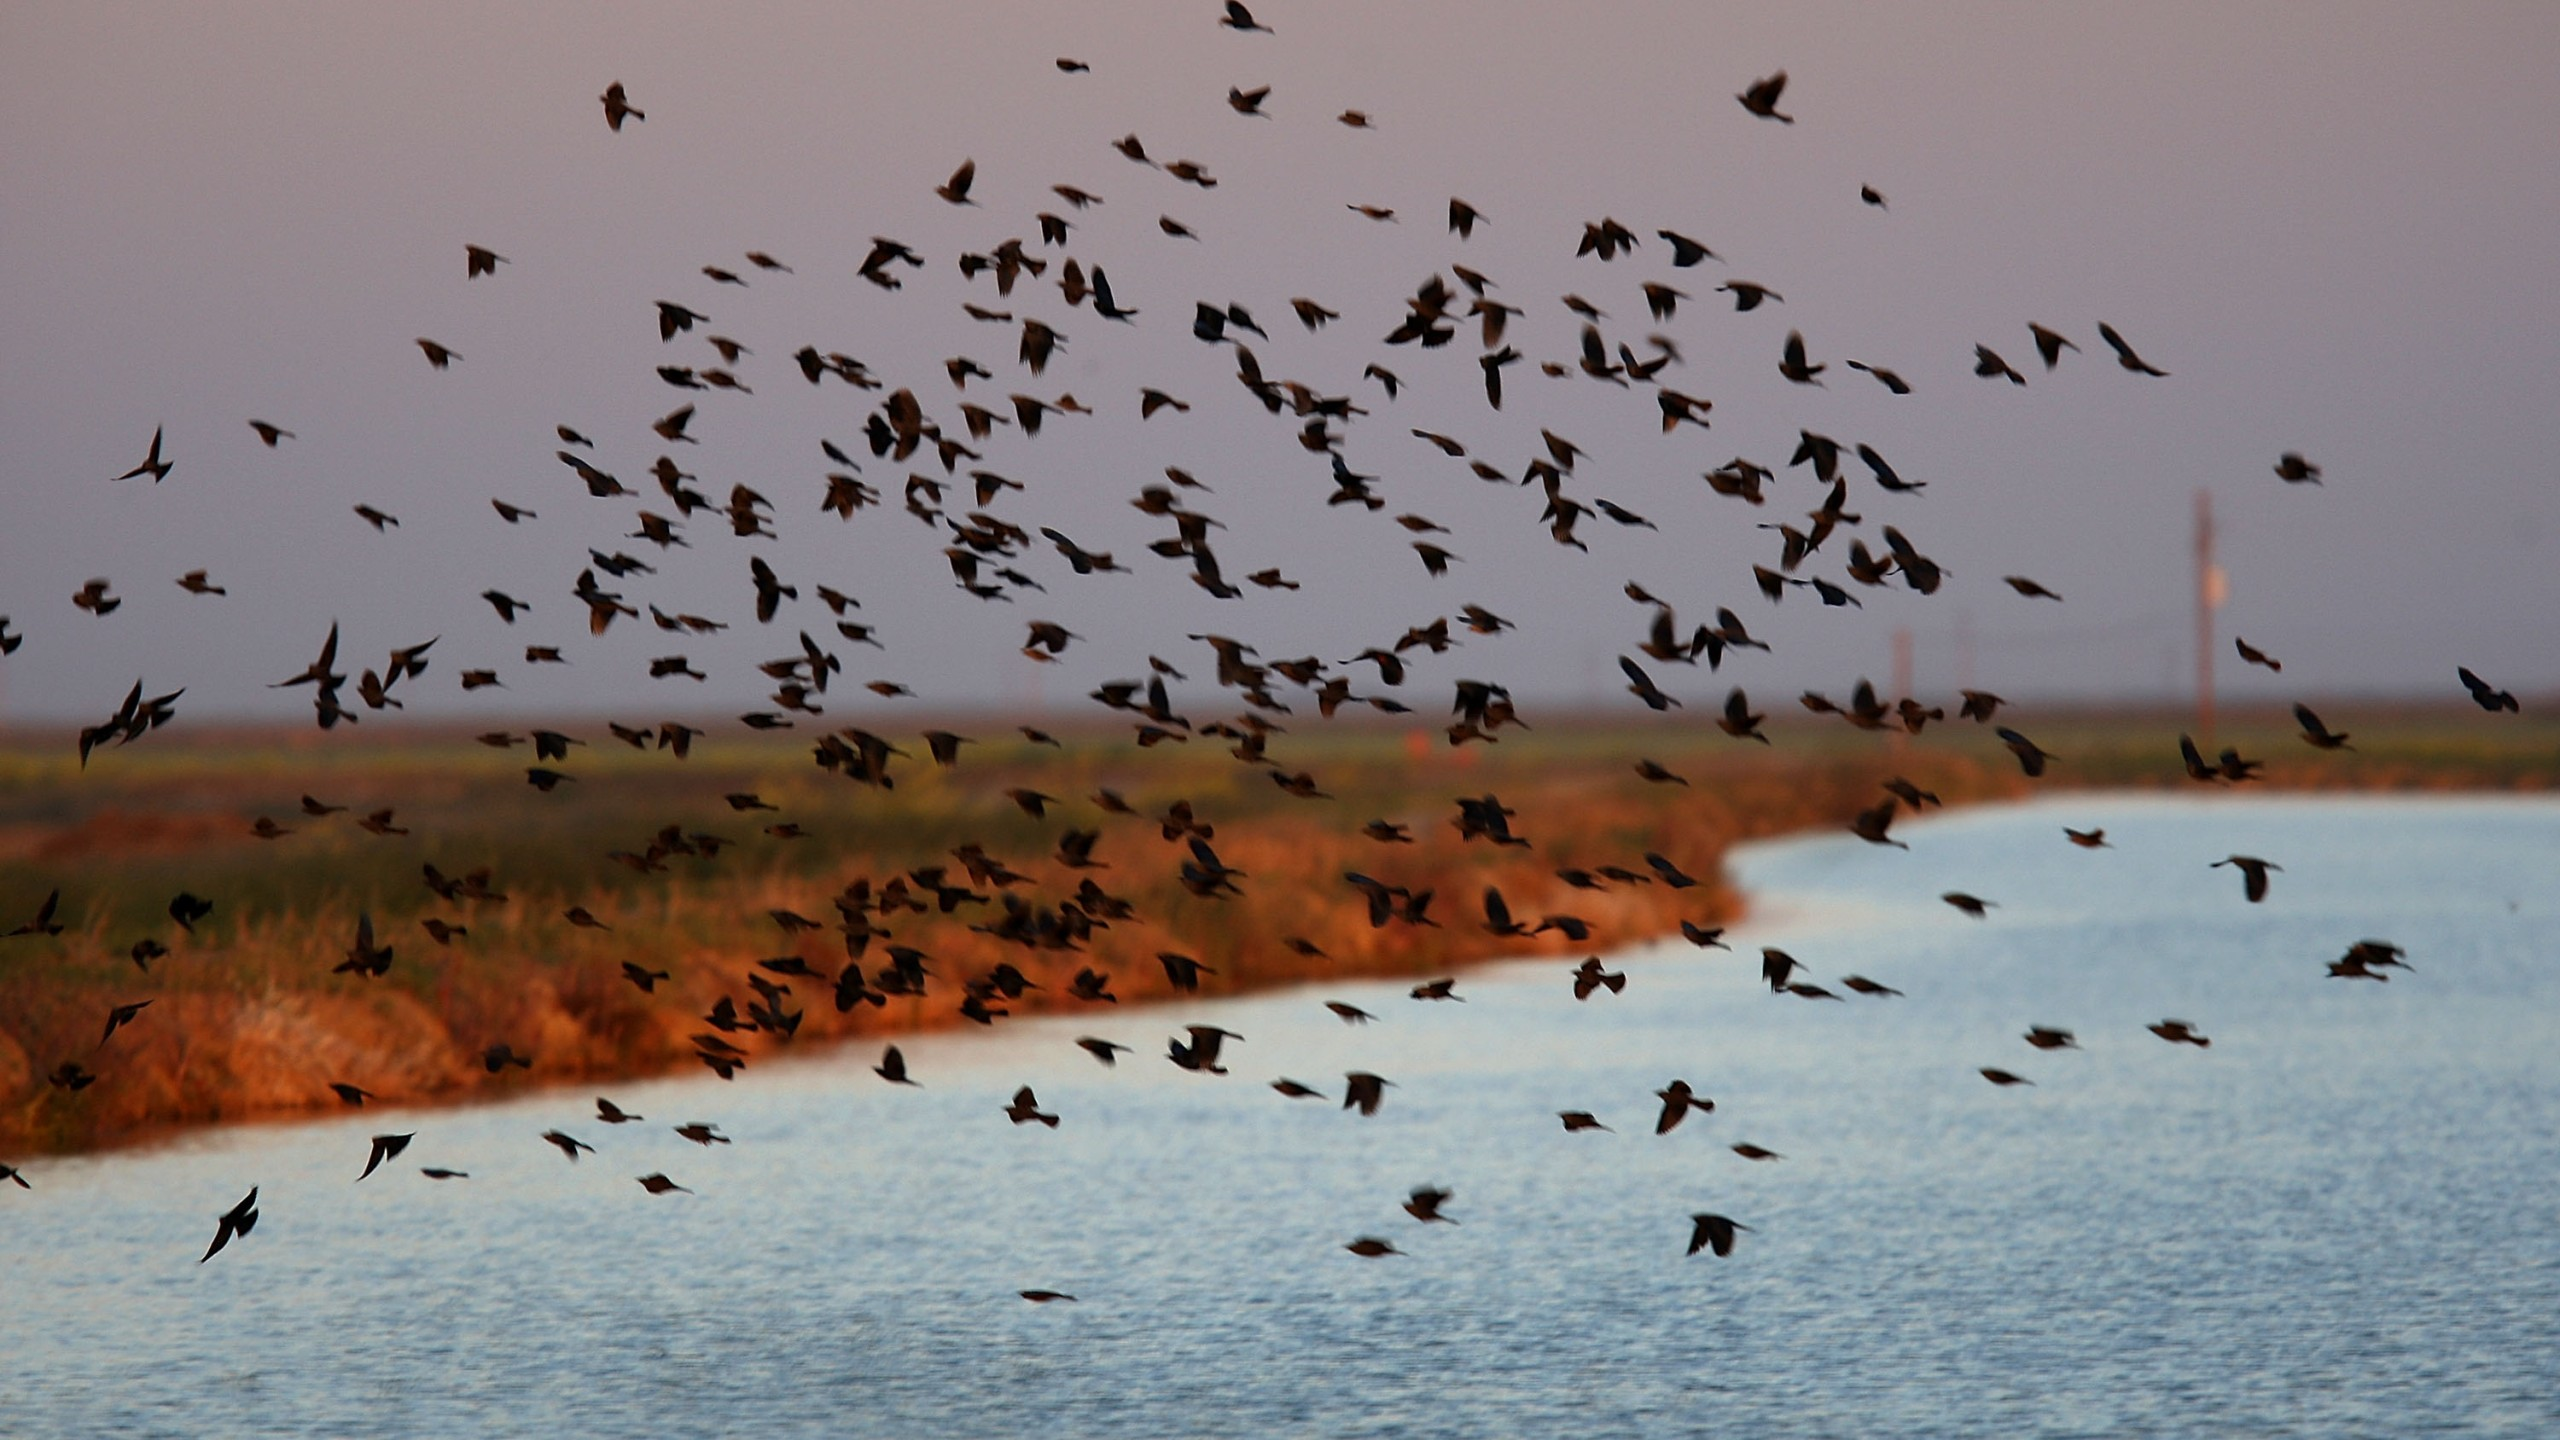 Blackbirds fly over an irrigation canal on April 17, 2009 near Firebaugh in Fresno County. (Credit: David McNew/Getty Images)